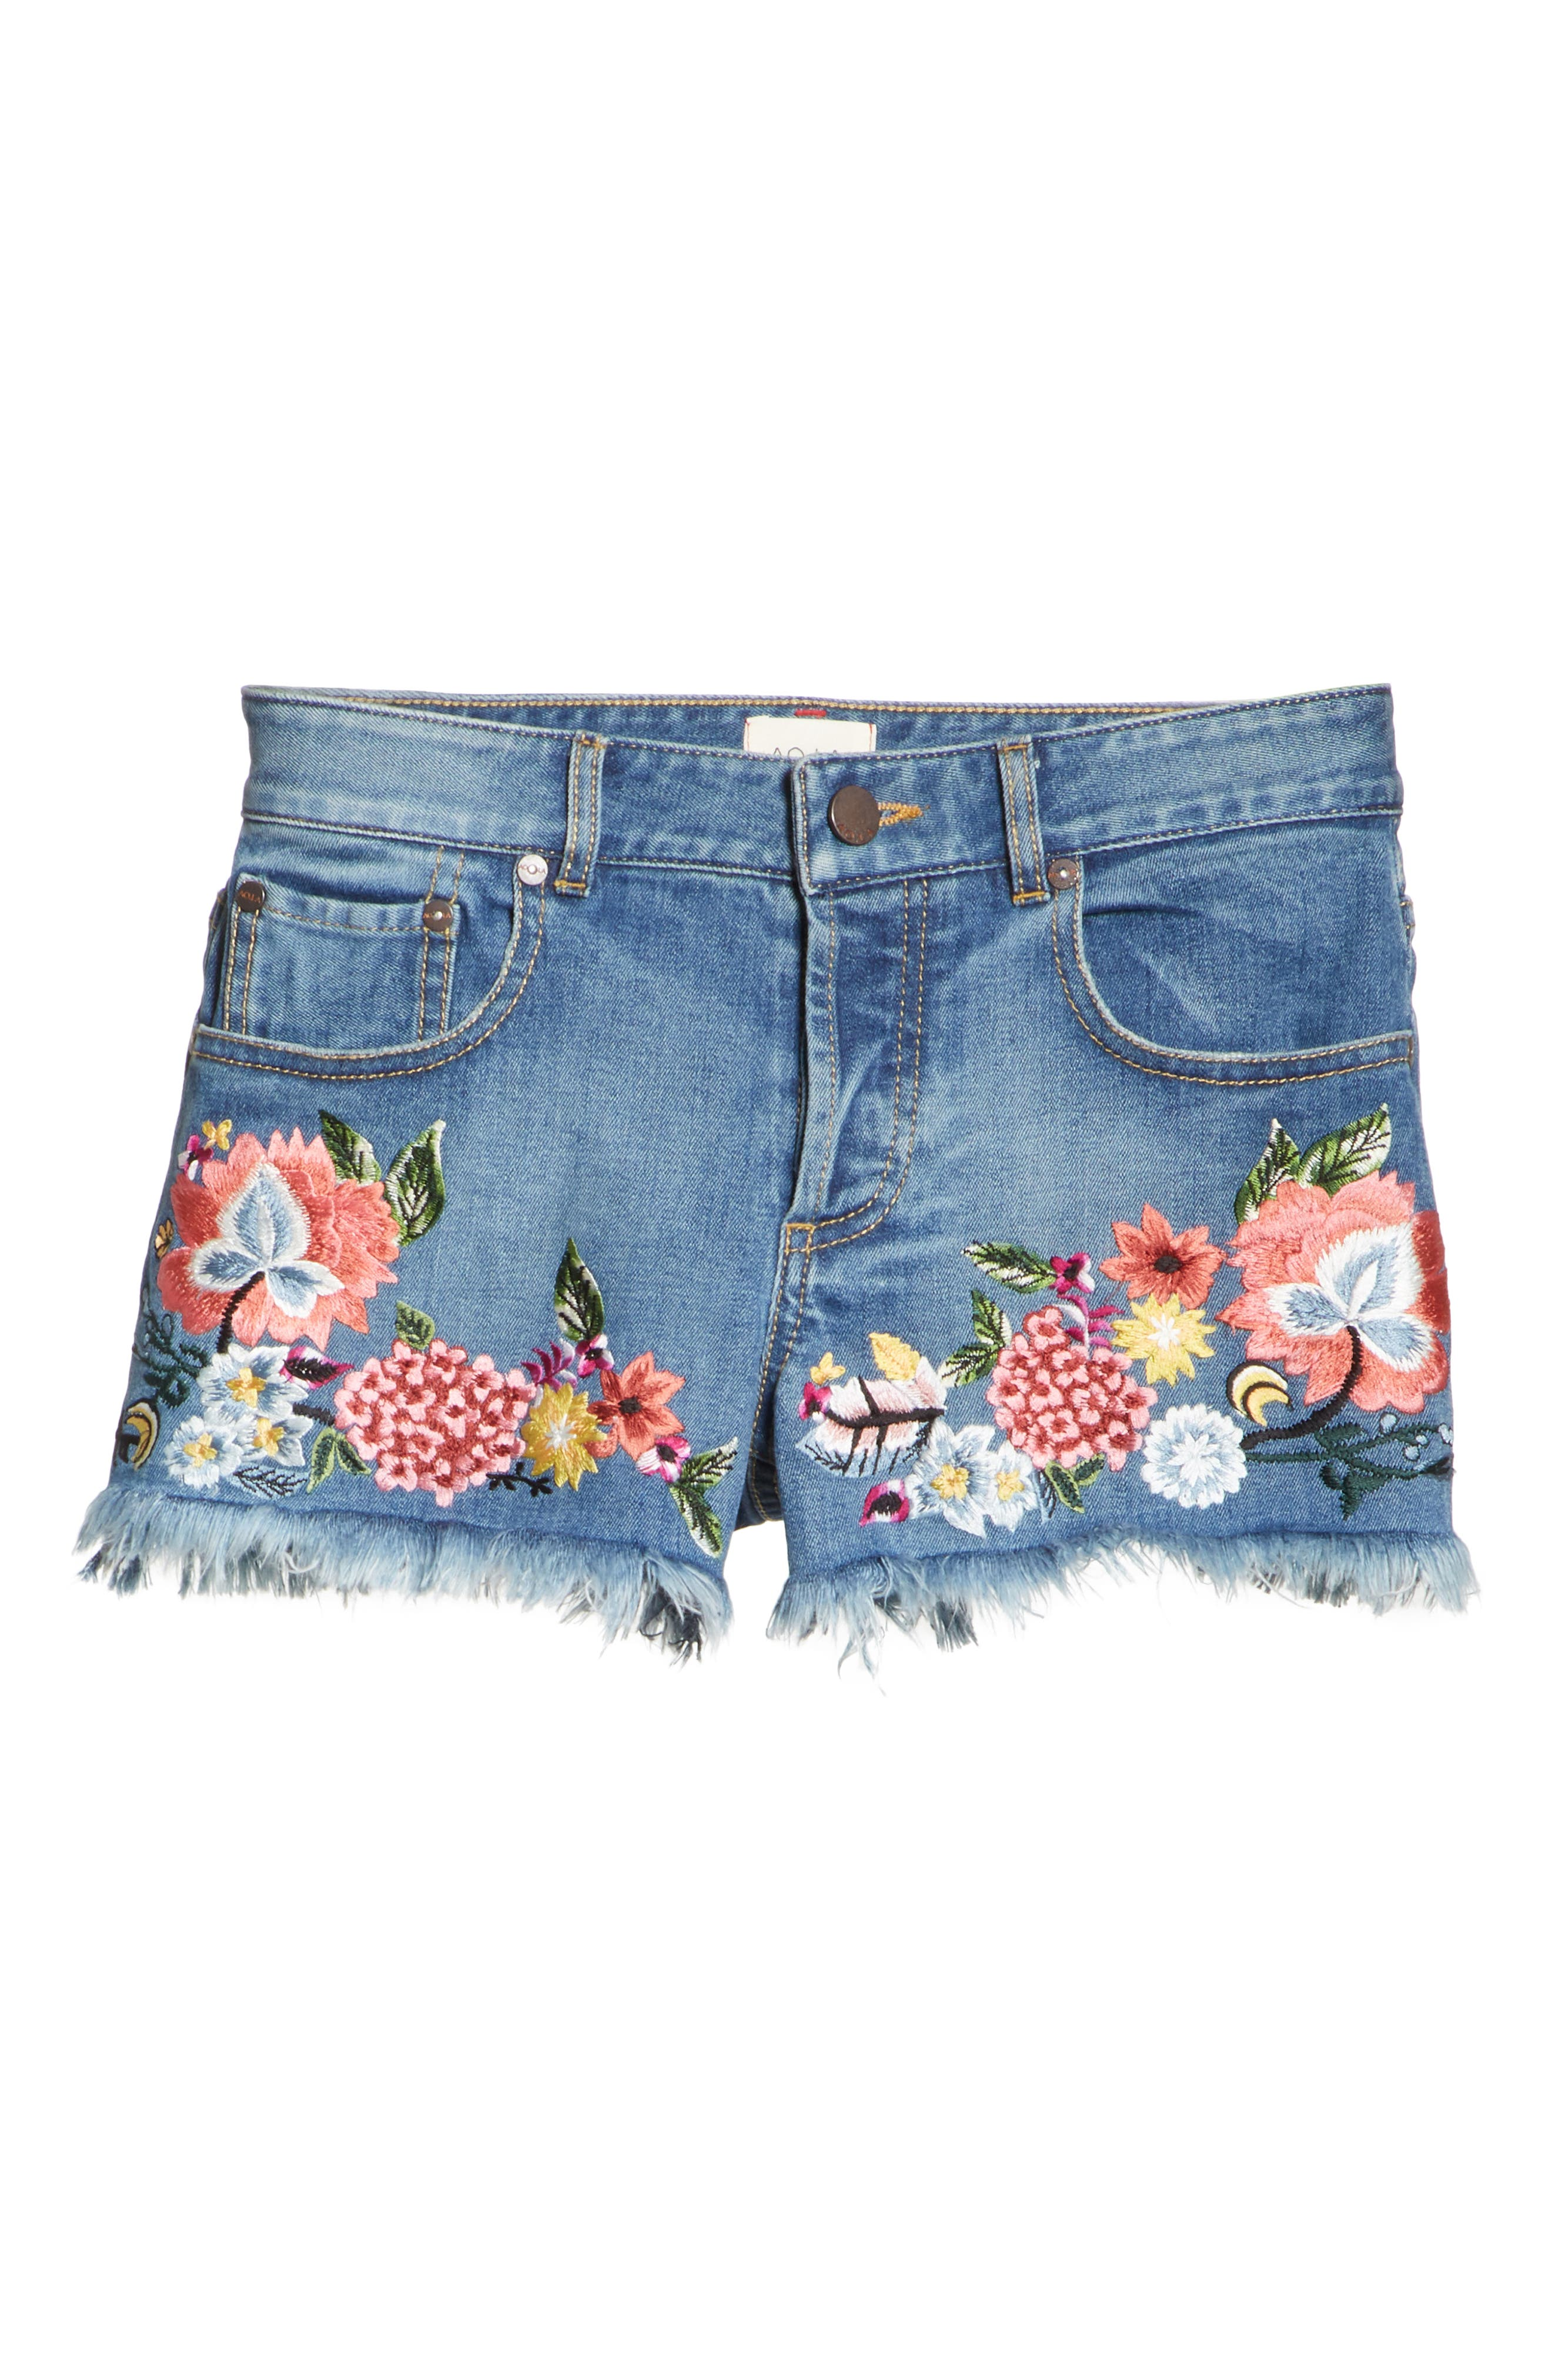 ALICE + OLIVIA JEANS,                             Embroidered Denim Shorts,                             Alternate thumbnail 6, color,                             460